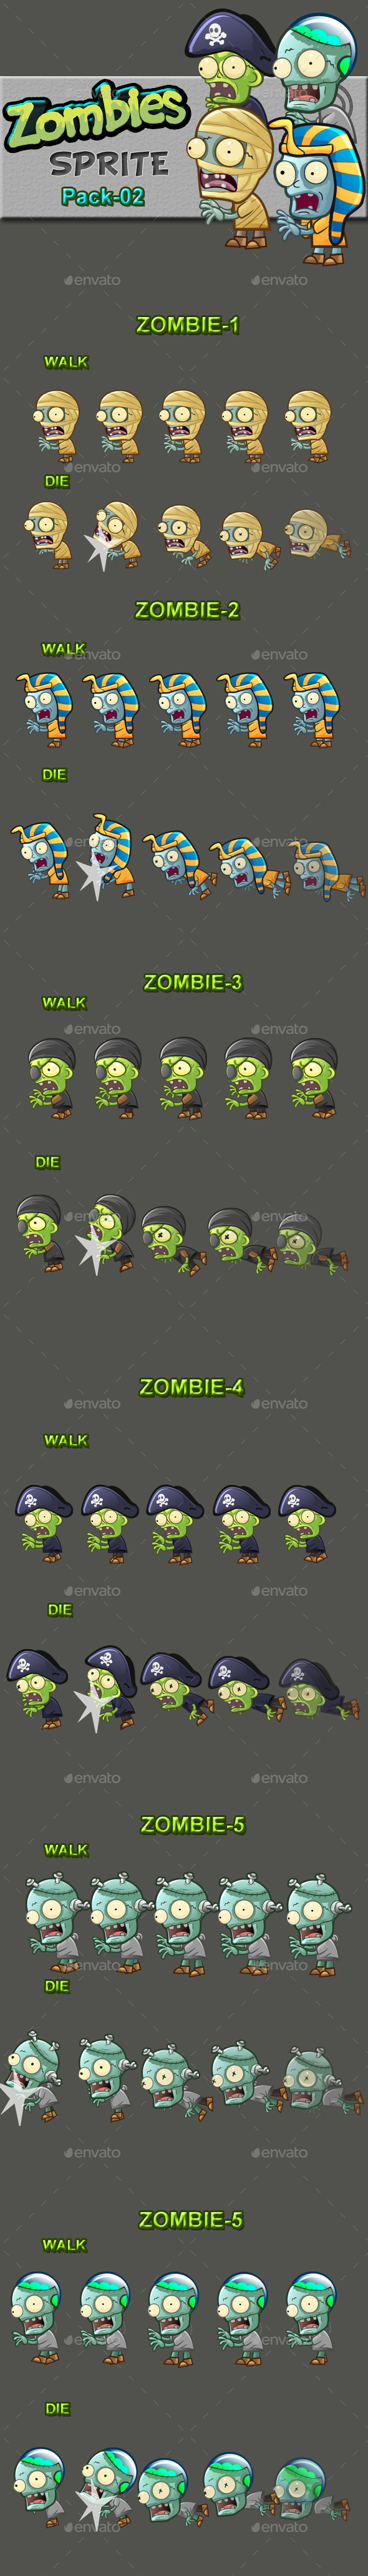 Zombies Sprite Sheets Pack-02 - Sprites Game Assets